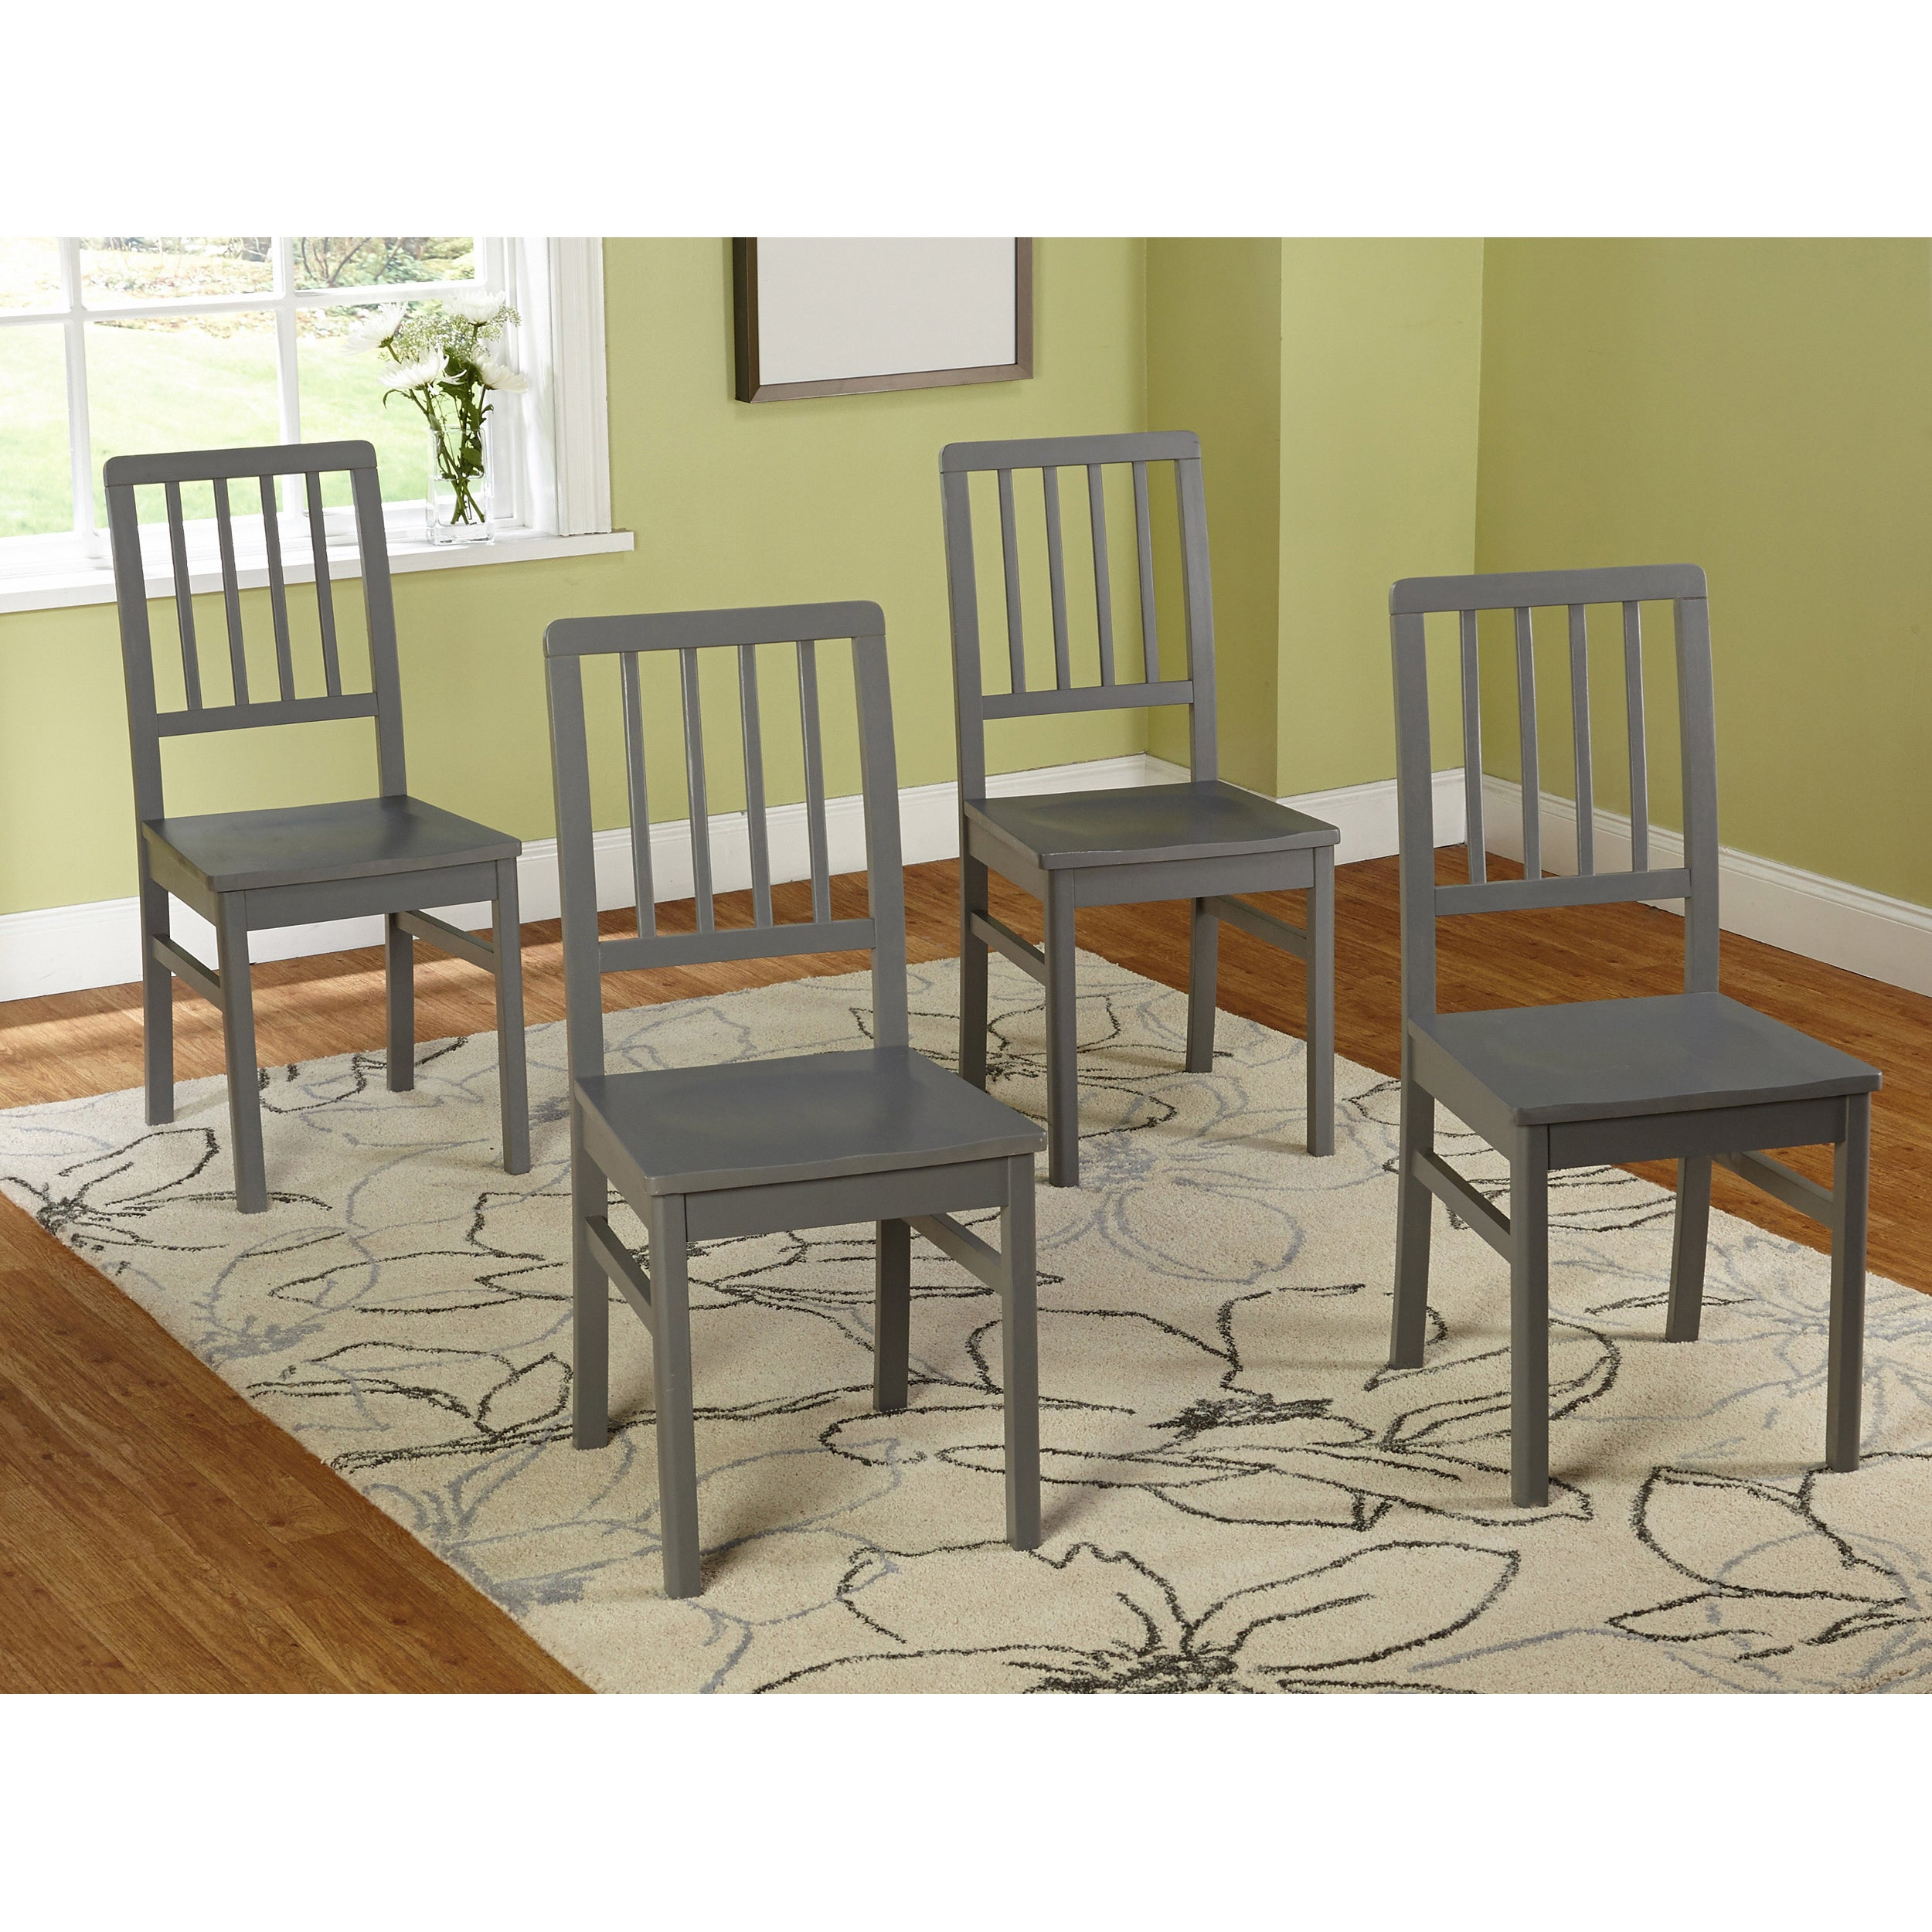 Shop simple living camden dining chair set of 4 n a free shipping today overstock com 6198706